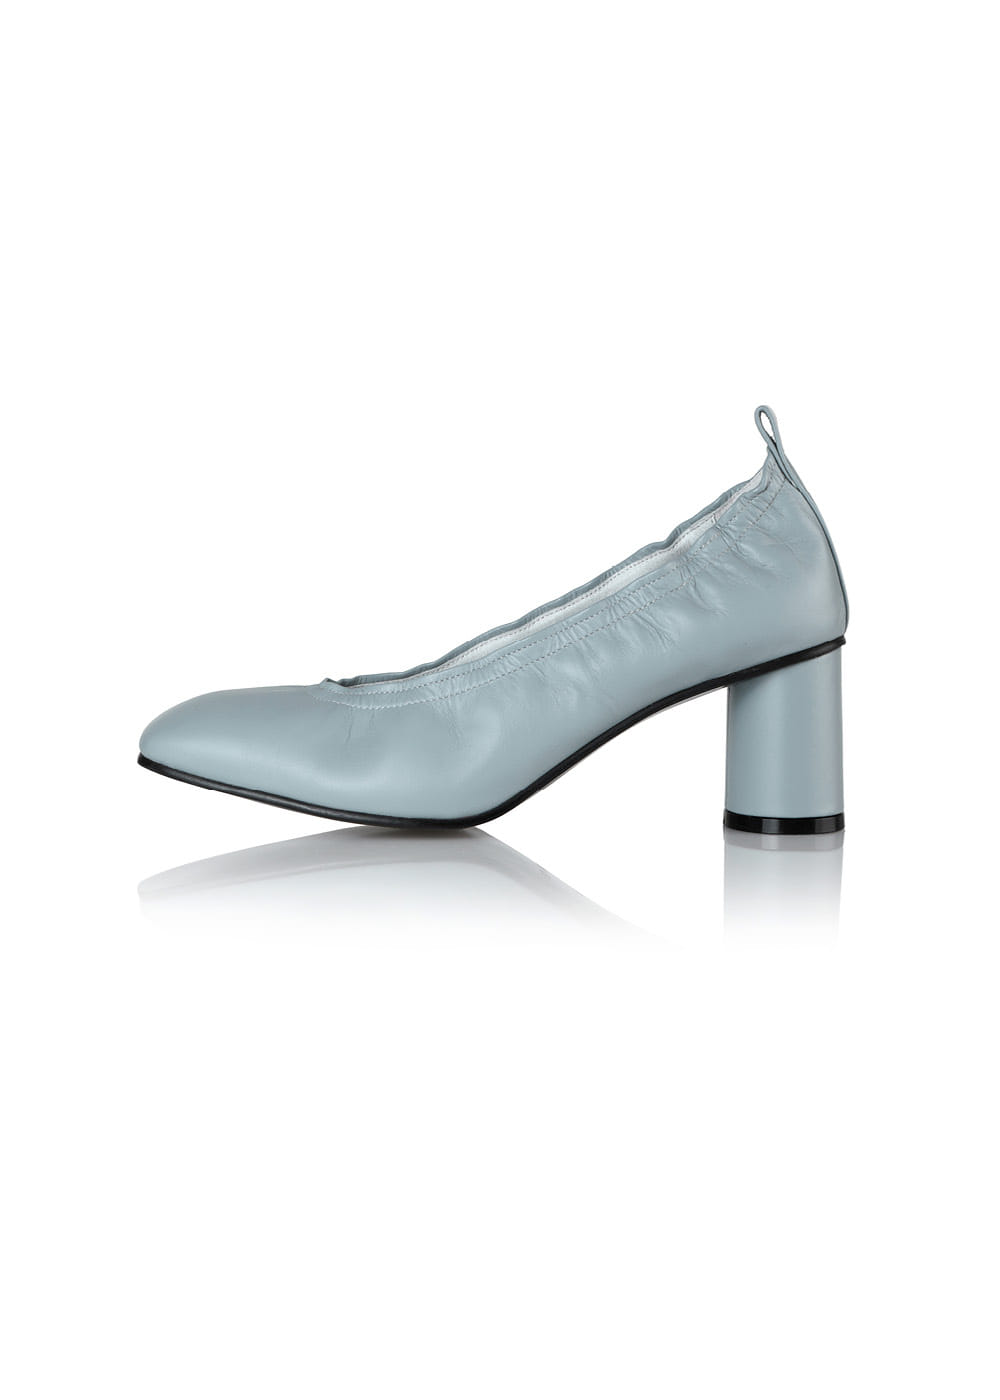 Meringue Pumps / YY9S-P09 / 10 colors